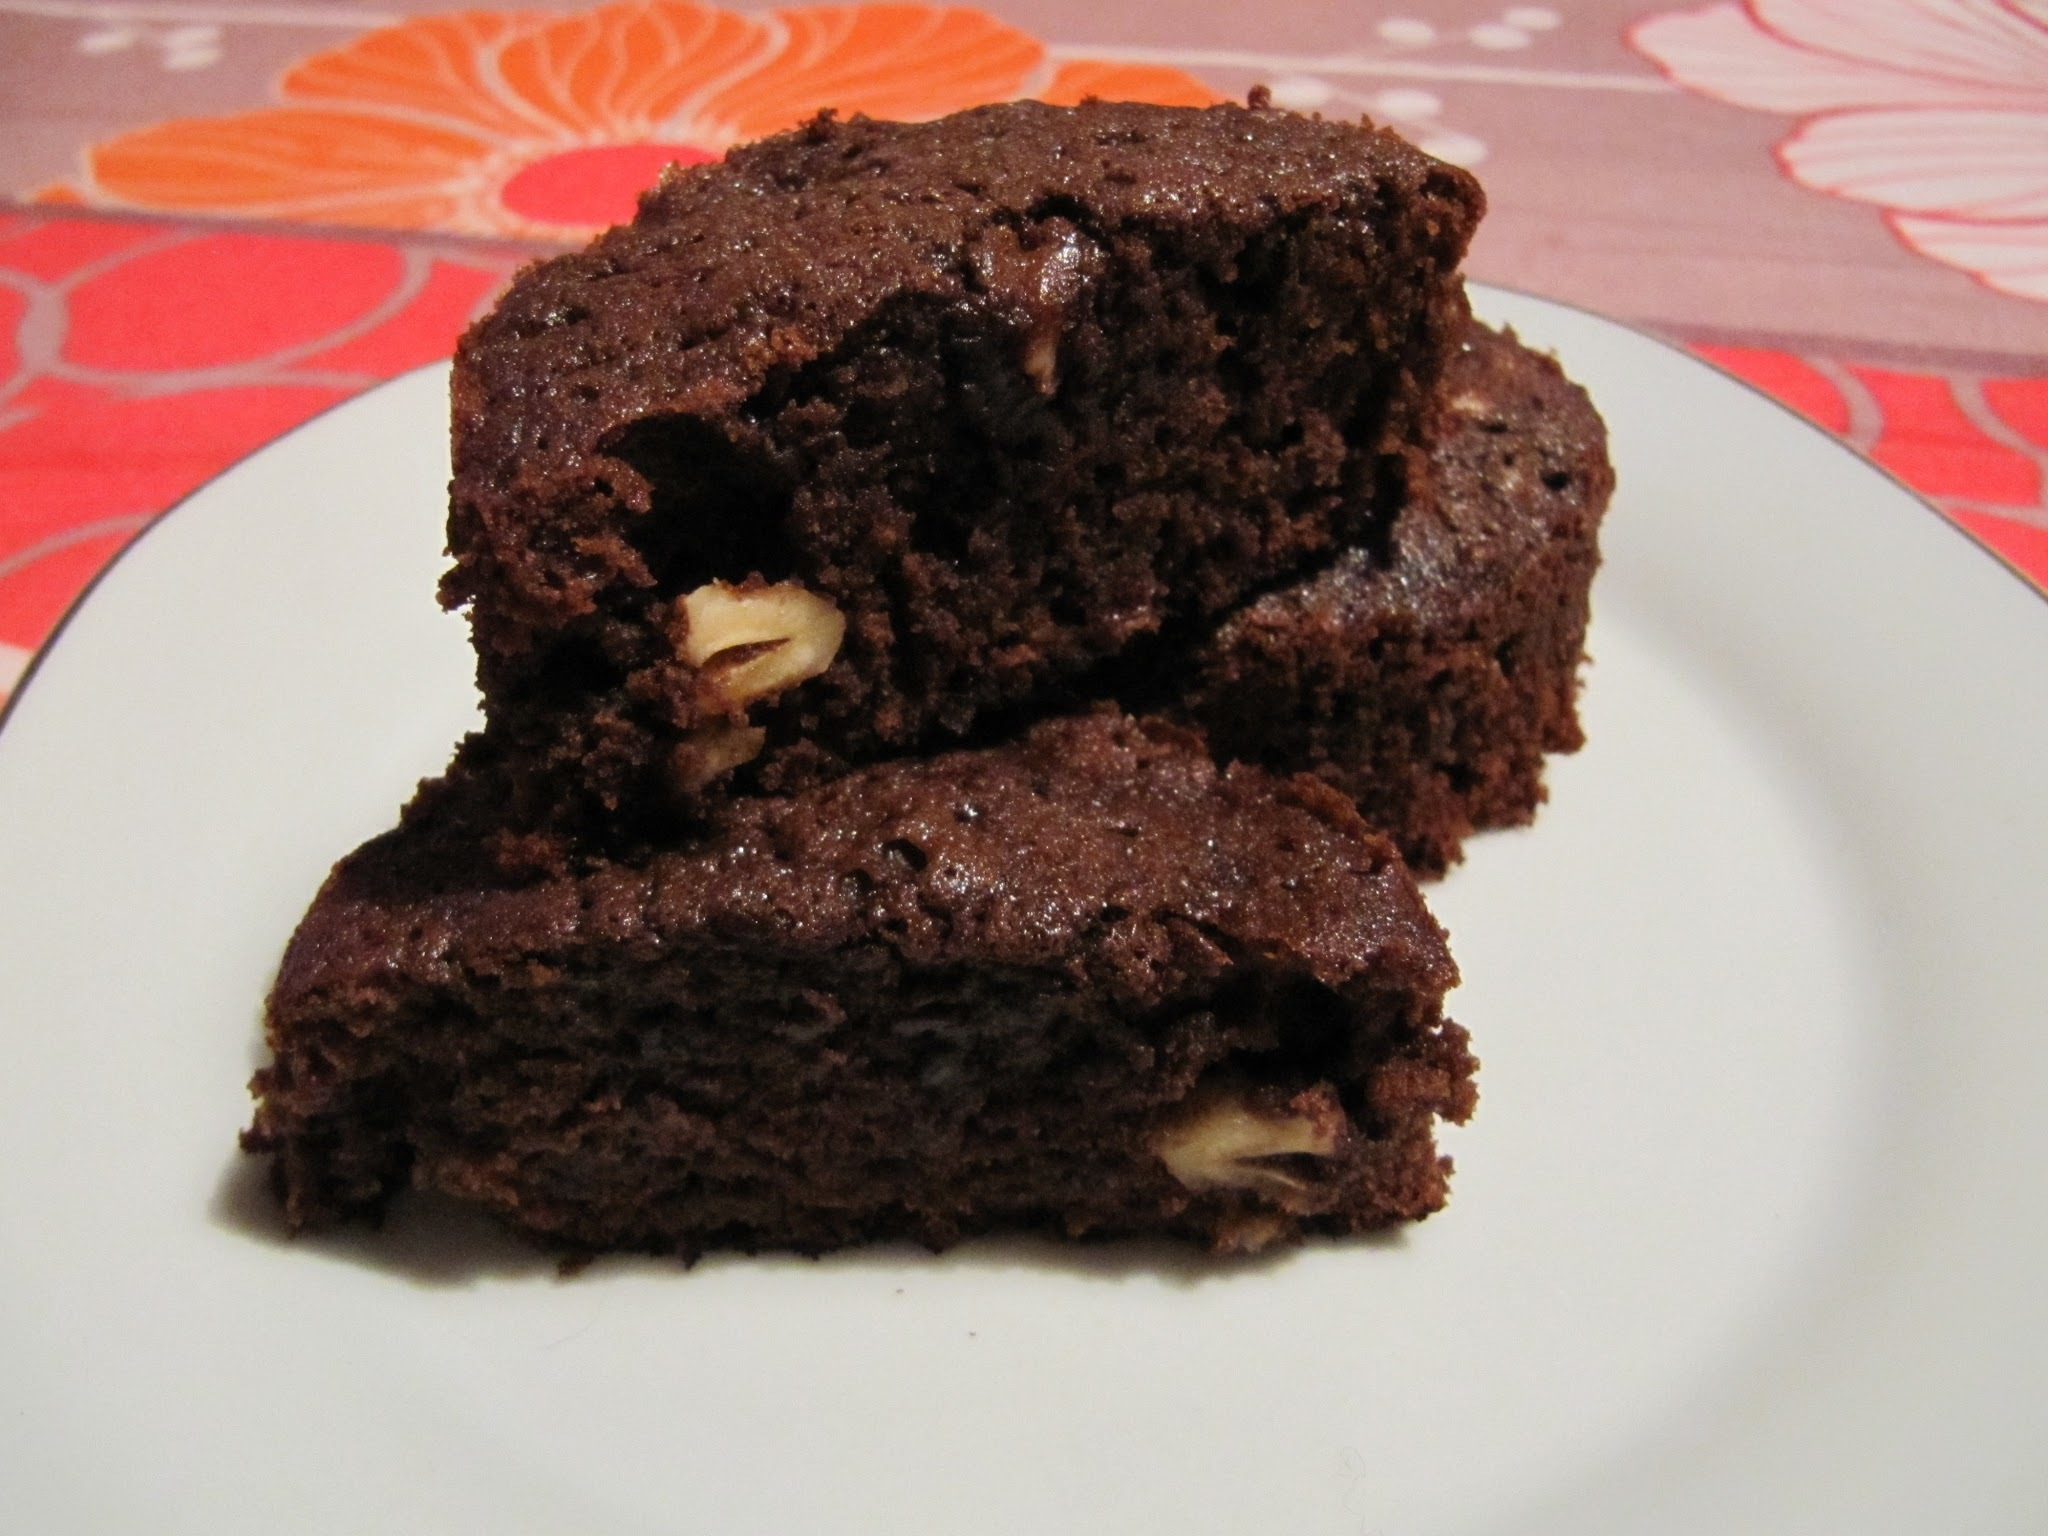 Le brownie de Christophe Michalak